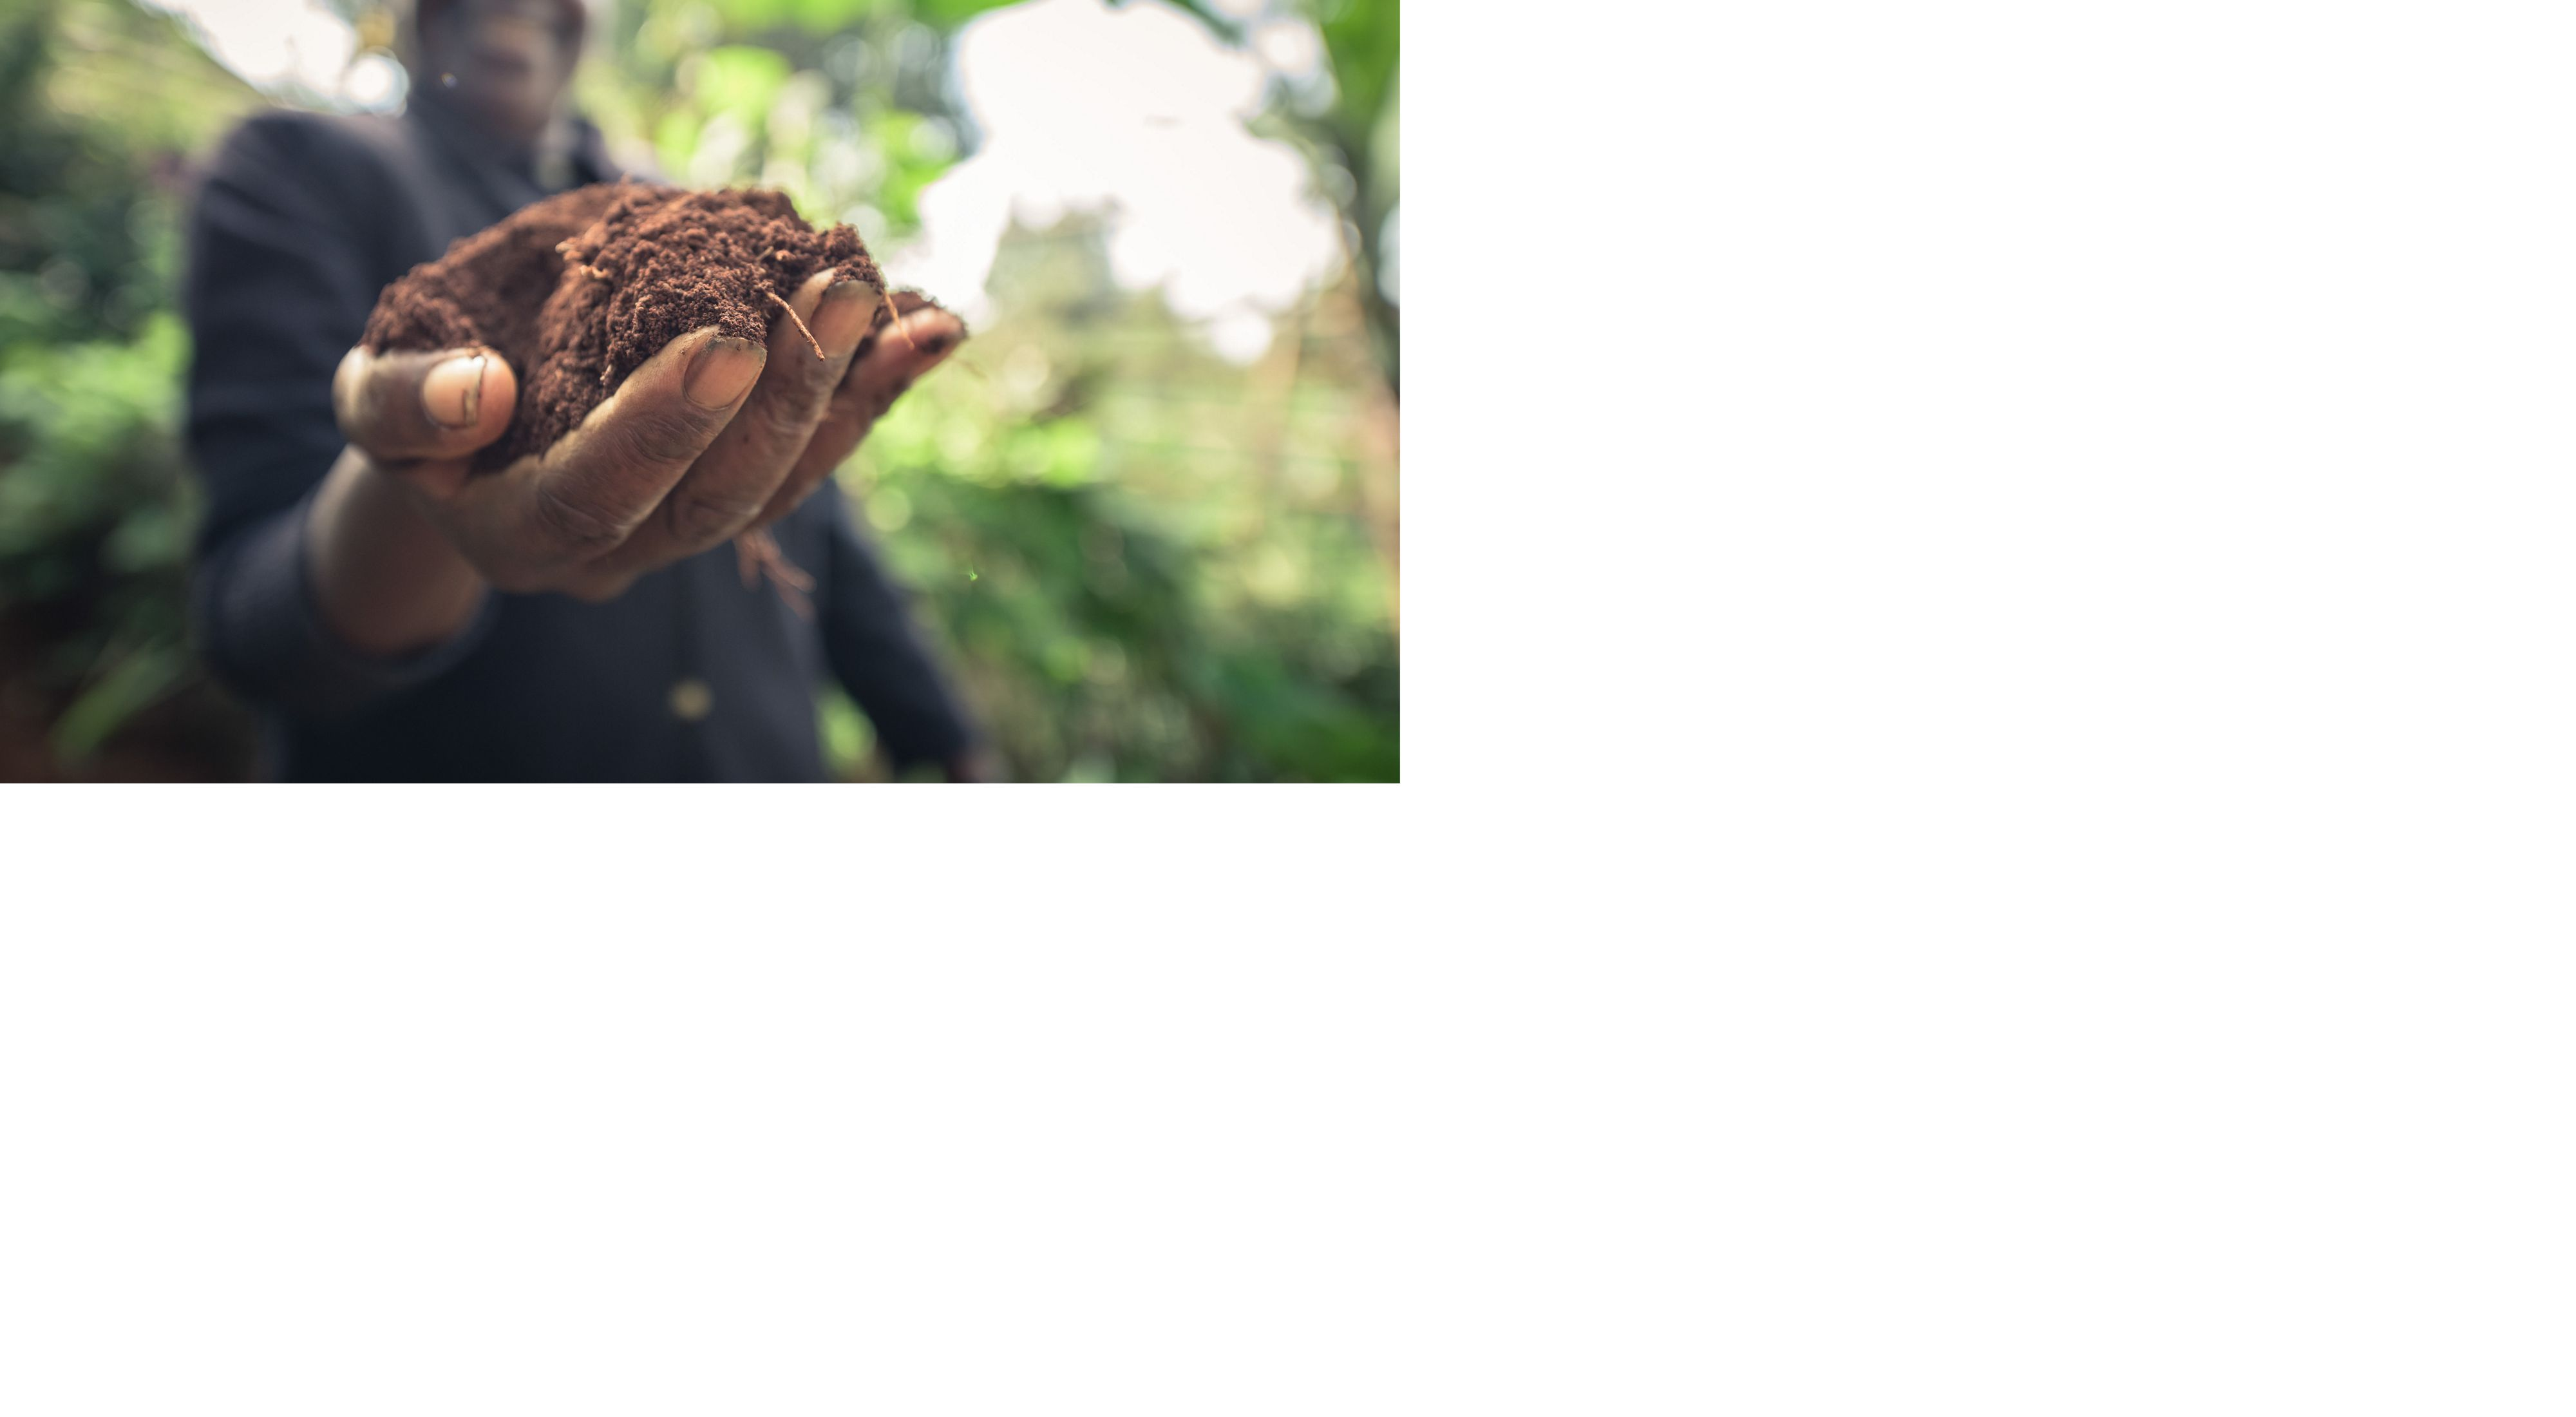 A hand holding soil